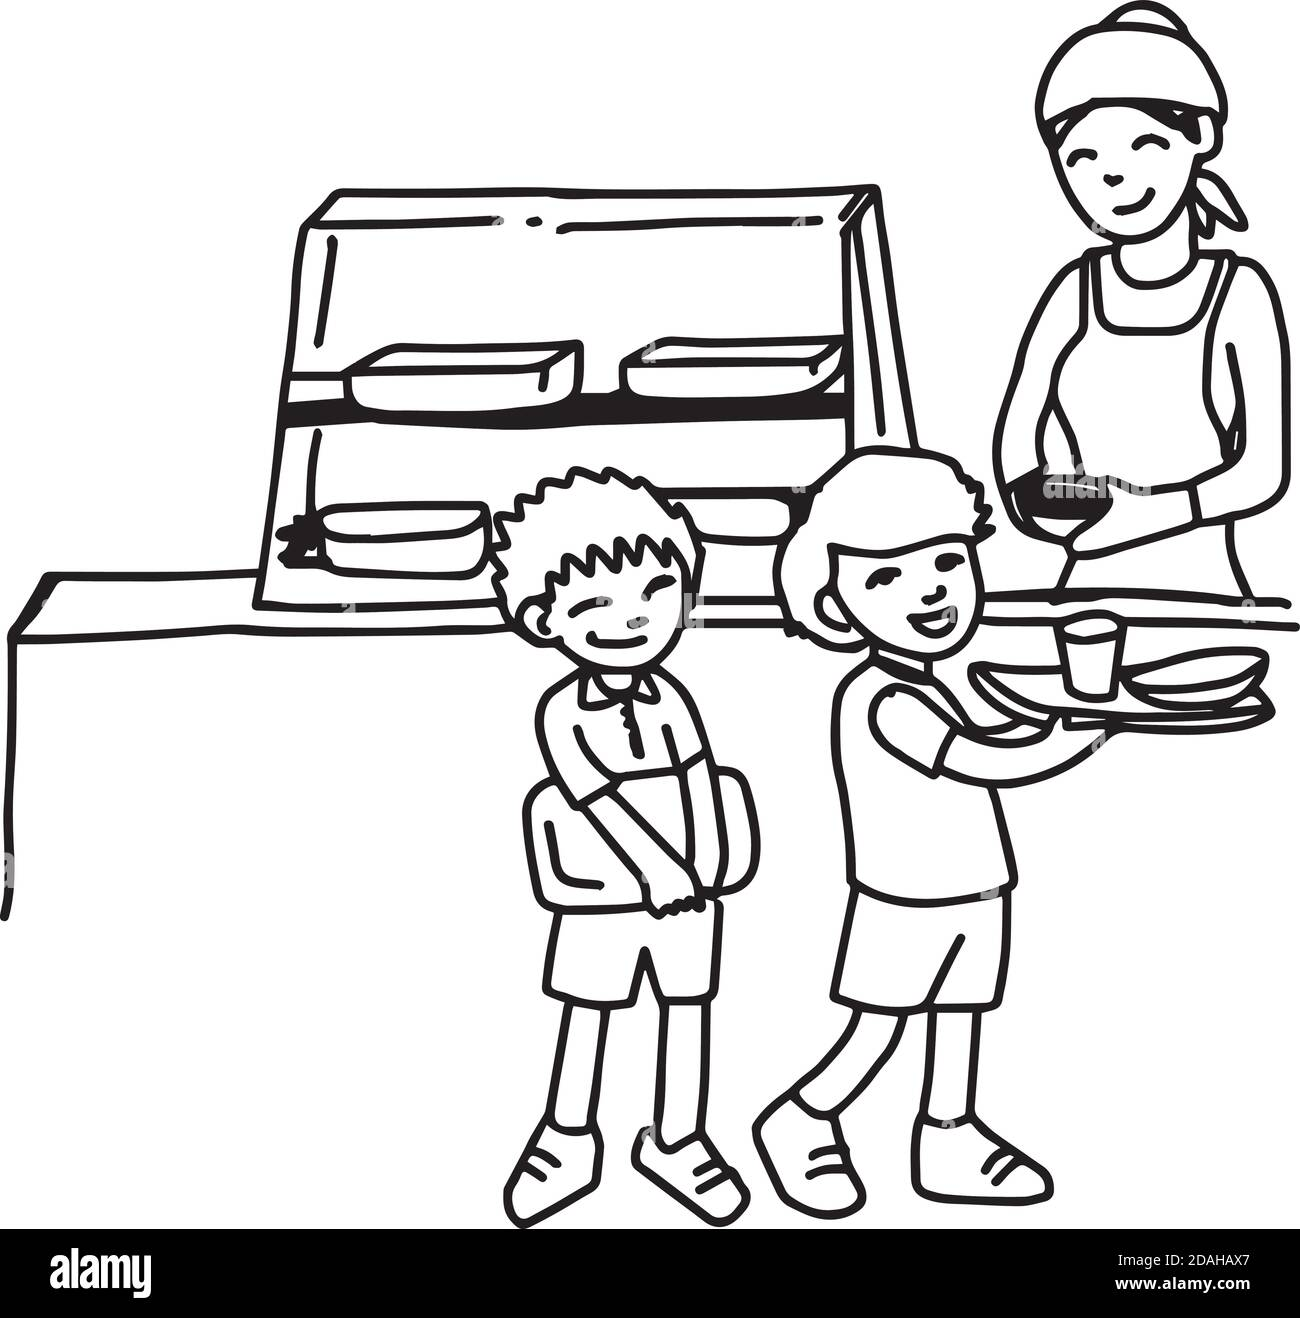 Illustation Vector Hand Drawn Doodle Of Canteen With Two Boys Holding Tray Isolated On White Background Stock Vector Image Art Alamy